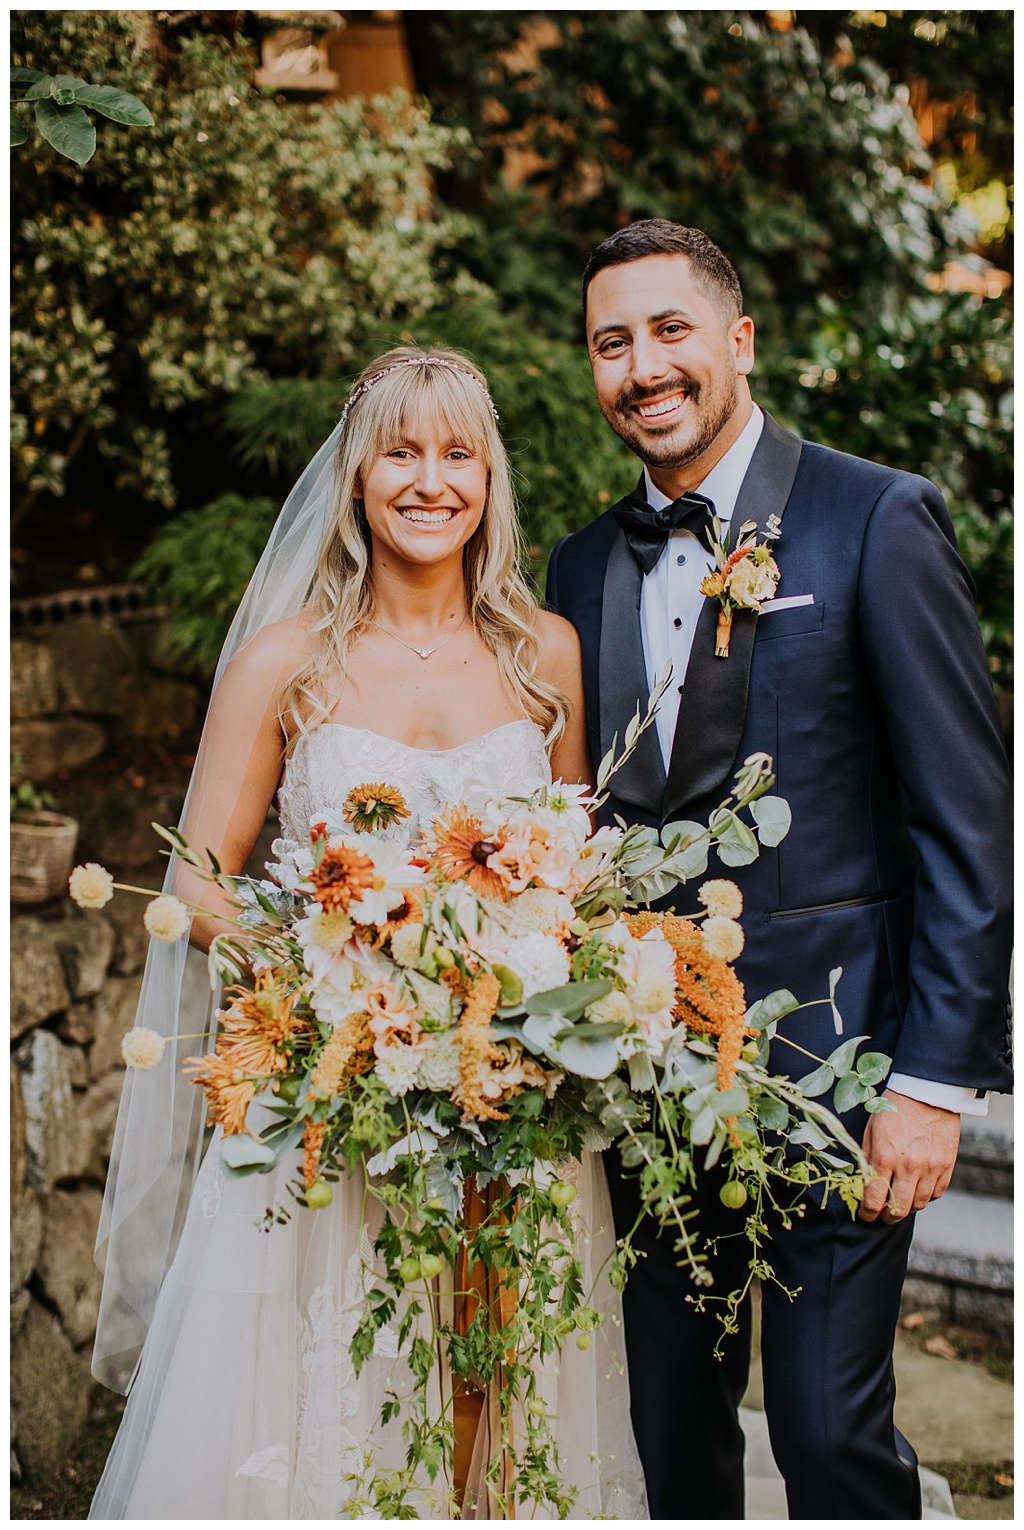 the happy couple with a bridal bouquet of dahlias, eucalyptus, love-in-a-puff, lisianthius, celosia, scabiosa, rudbeckia, and other local and seasonal flowers